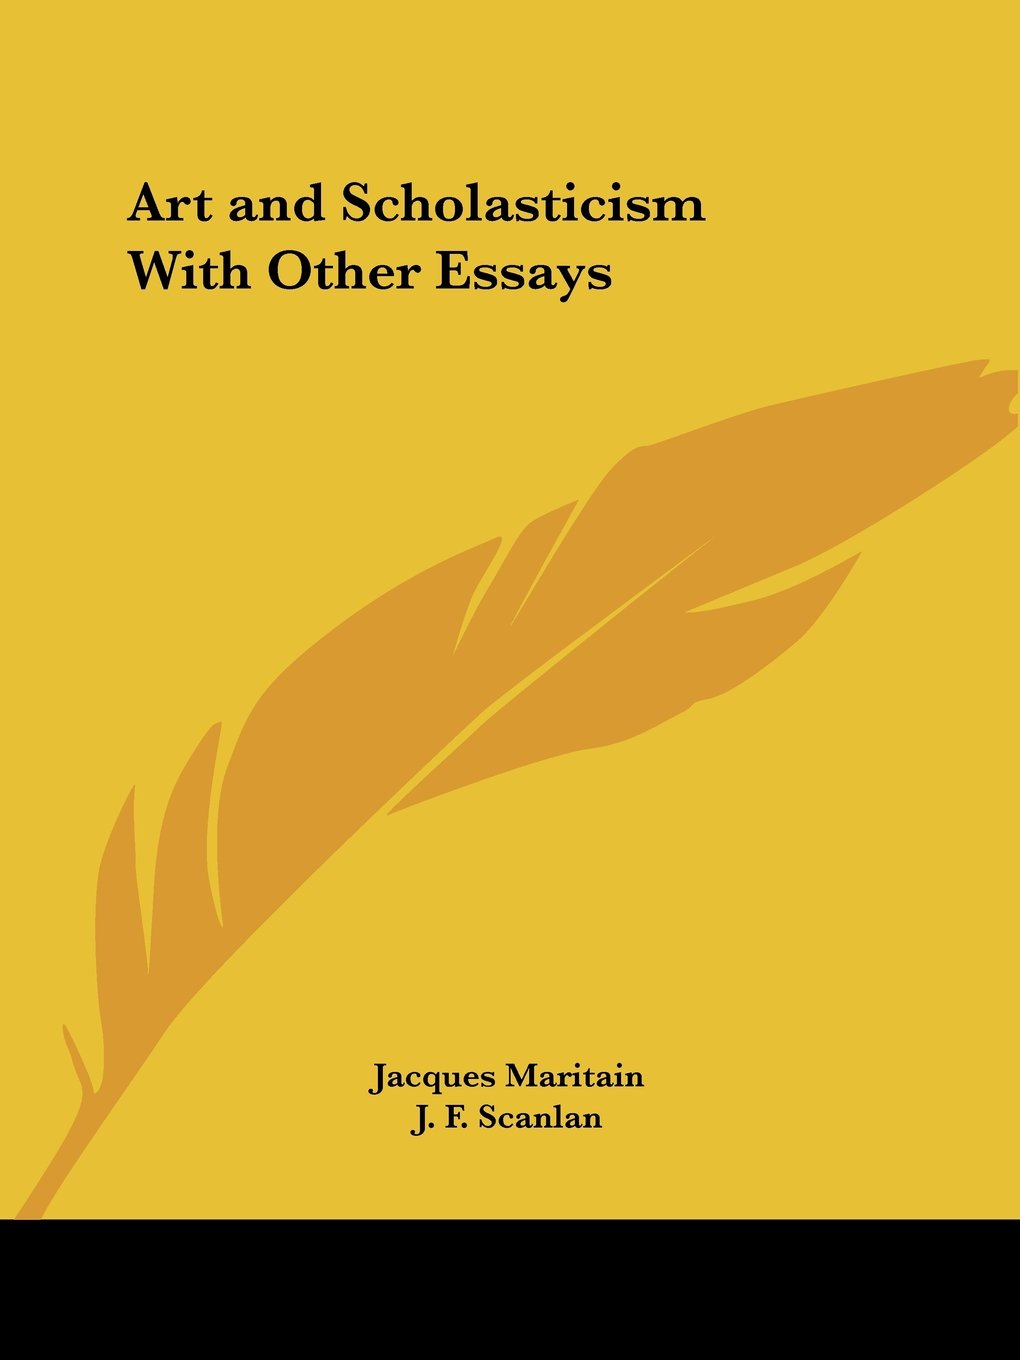 003 Art And Scholasticism With Other Essays 512bs37e1sml Essay Impressive Full